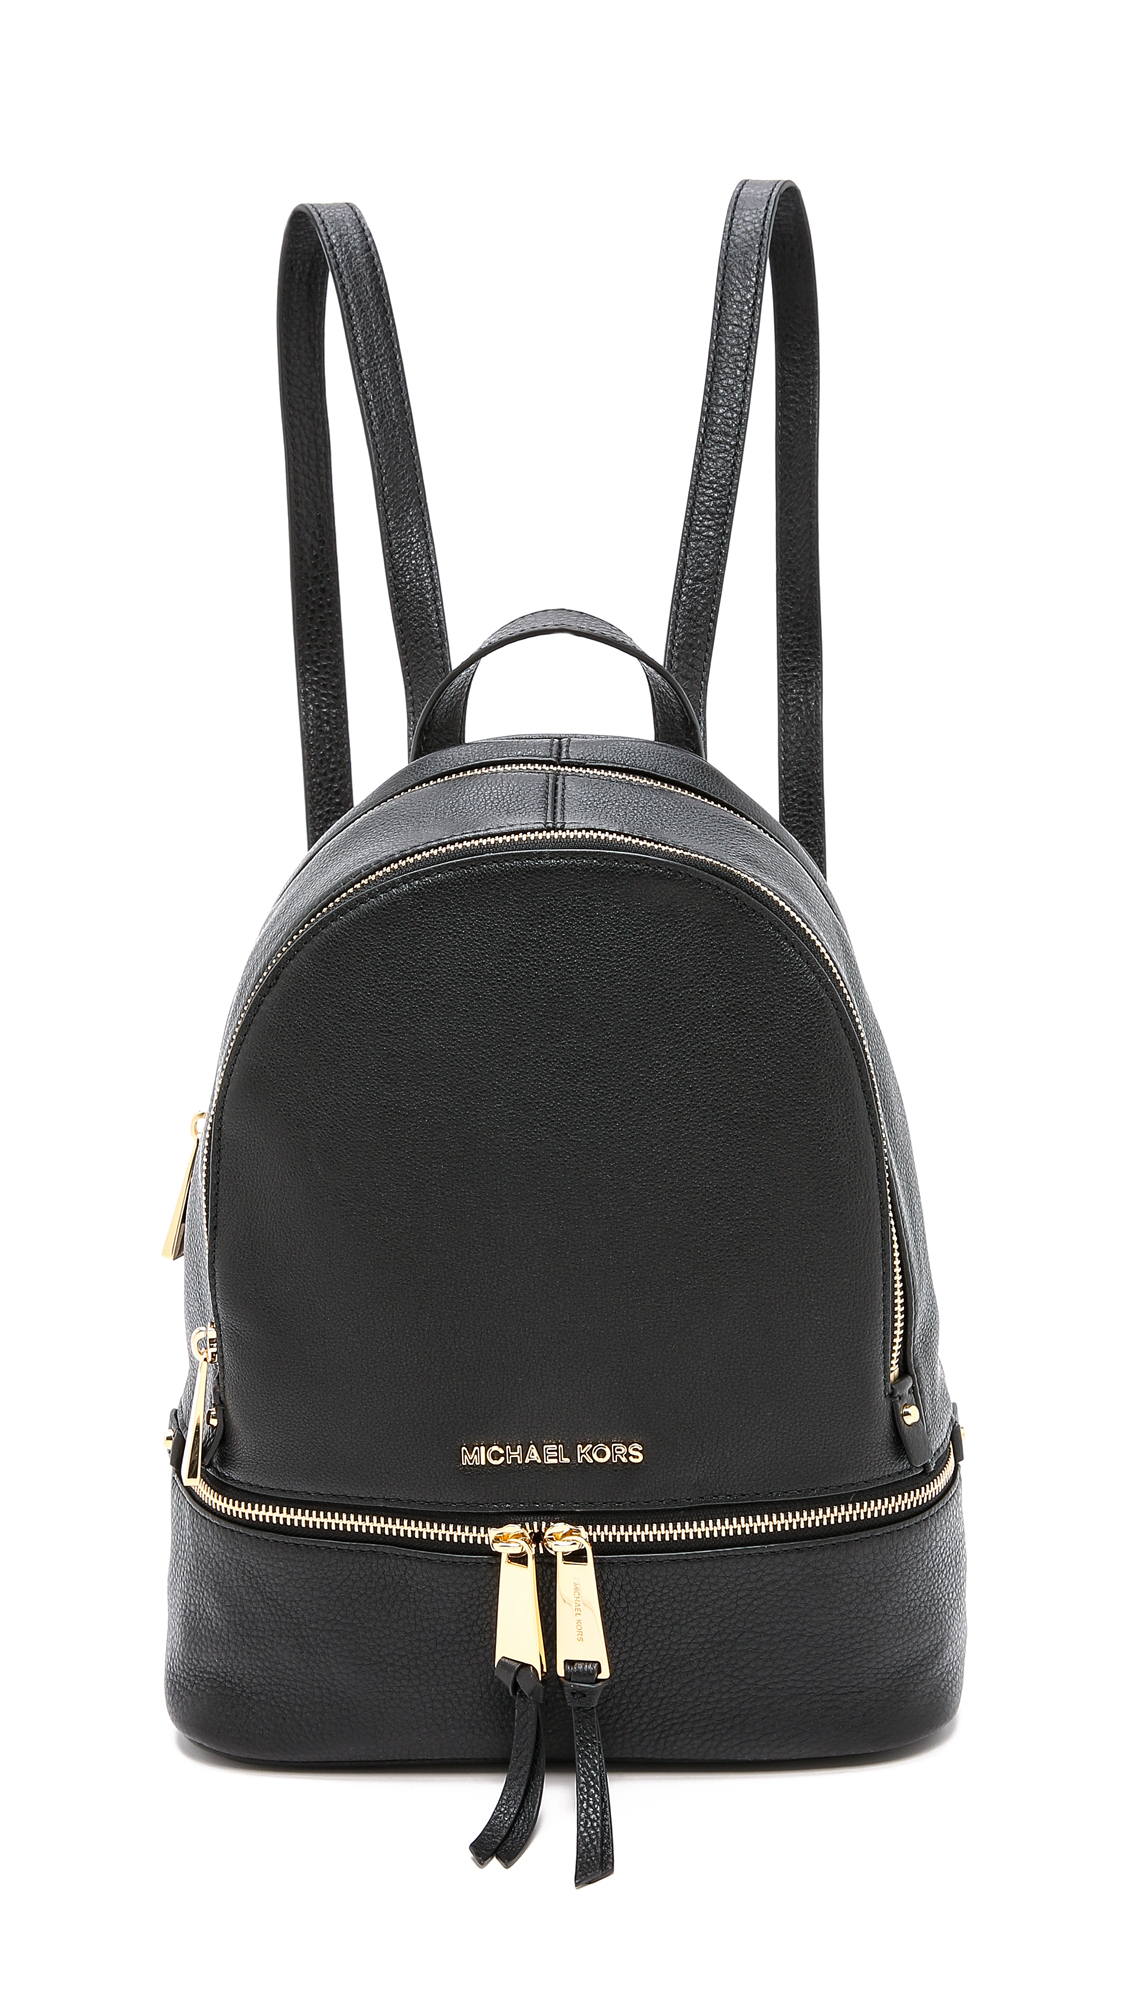 94ebffcf5dd26f Michael Kors Bags Backpack | Stanford Center for Opportunity Policy ...